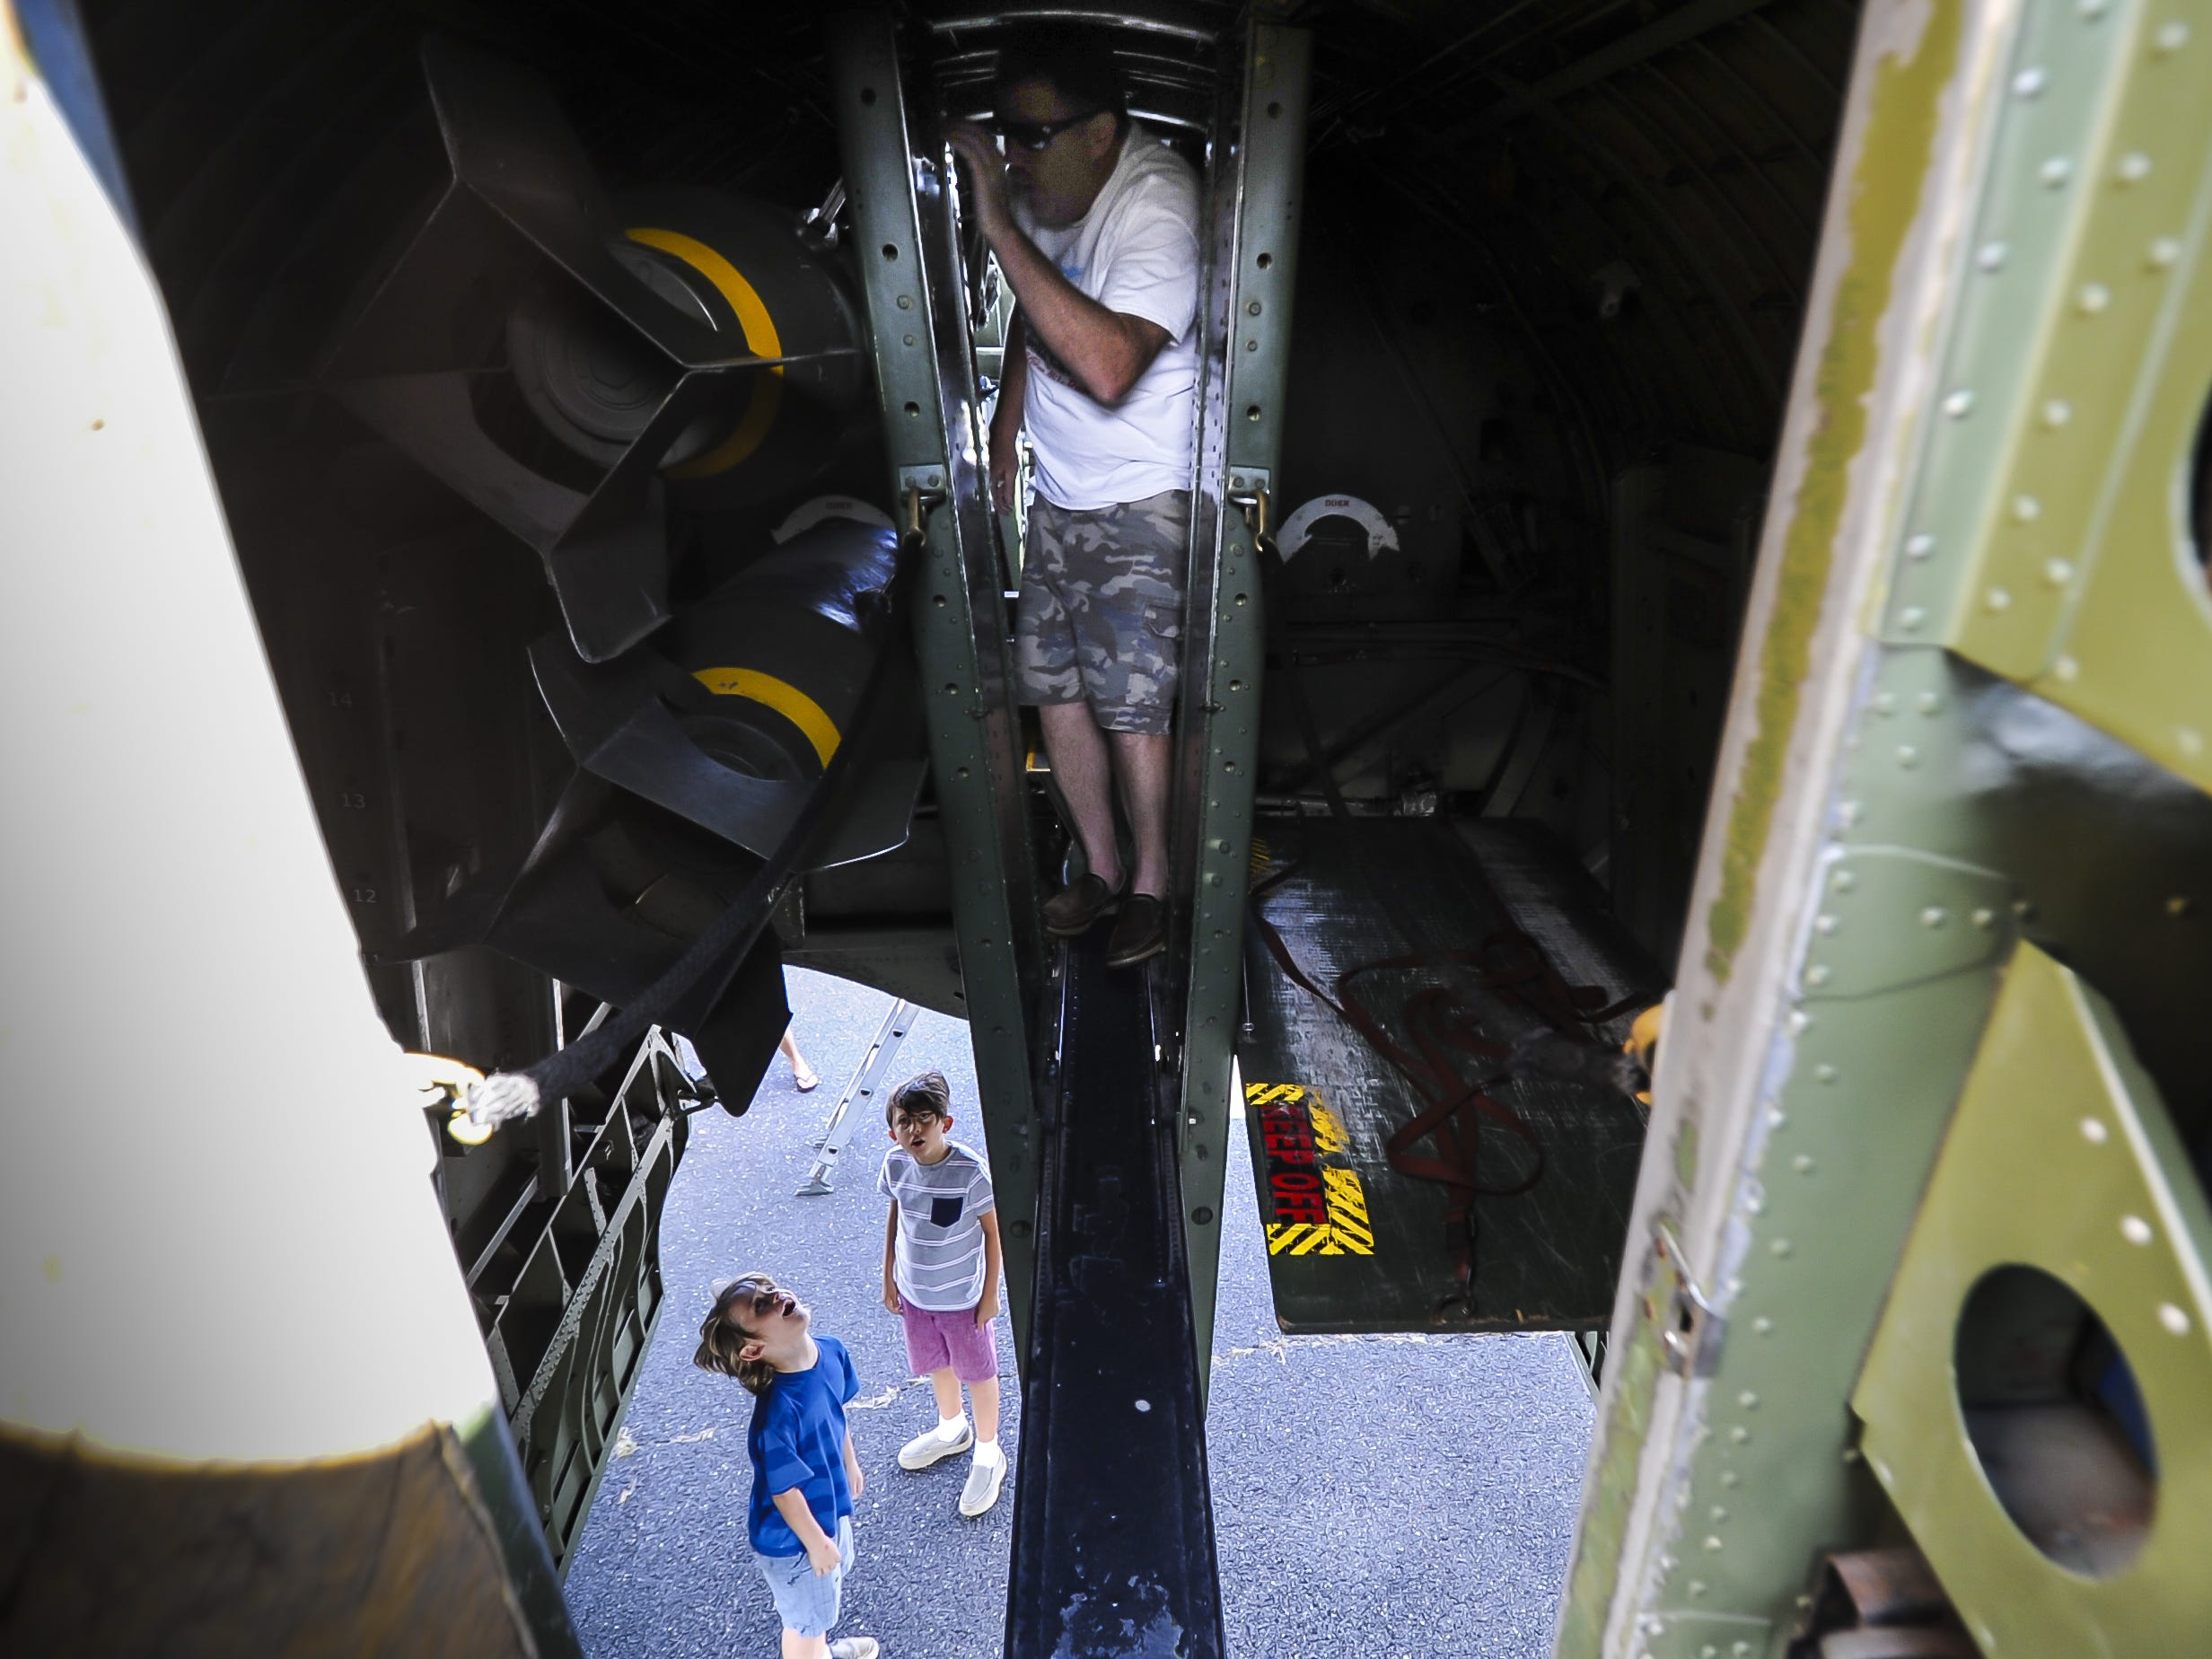 Jonathan Murath of Howell, center, walks across the plank inside the B-17 G Flying Fortess, as children look up at the bombs during the traveling WW II Wings of Freedom Tour exhibit at Momouth Jet Center/Executive Airport in Wall on Aug. 22, 2018.